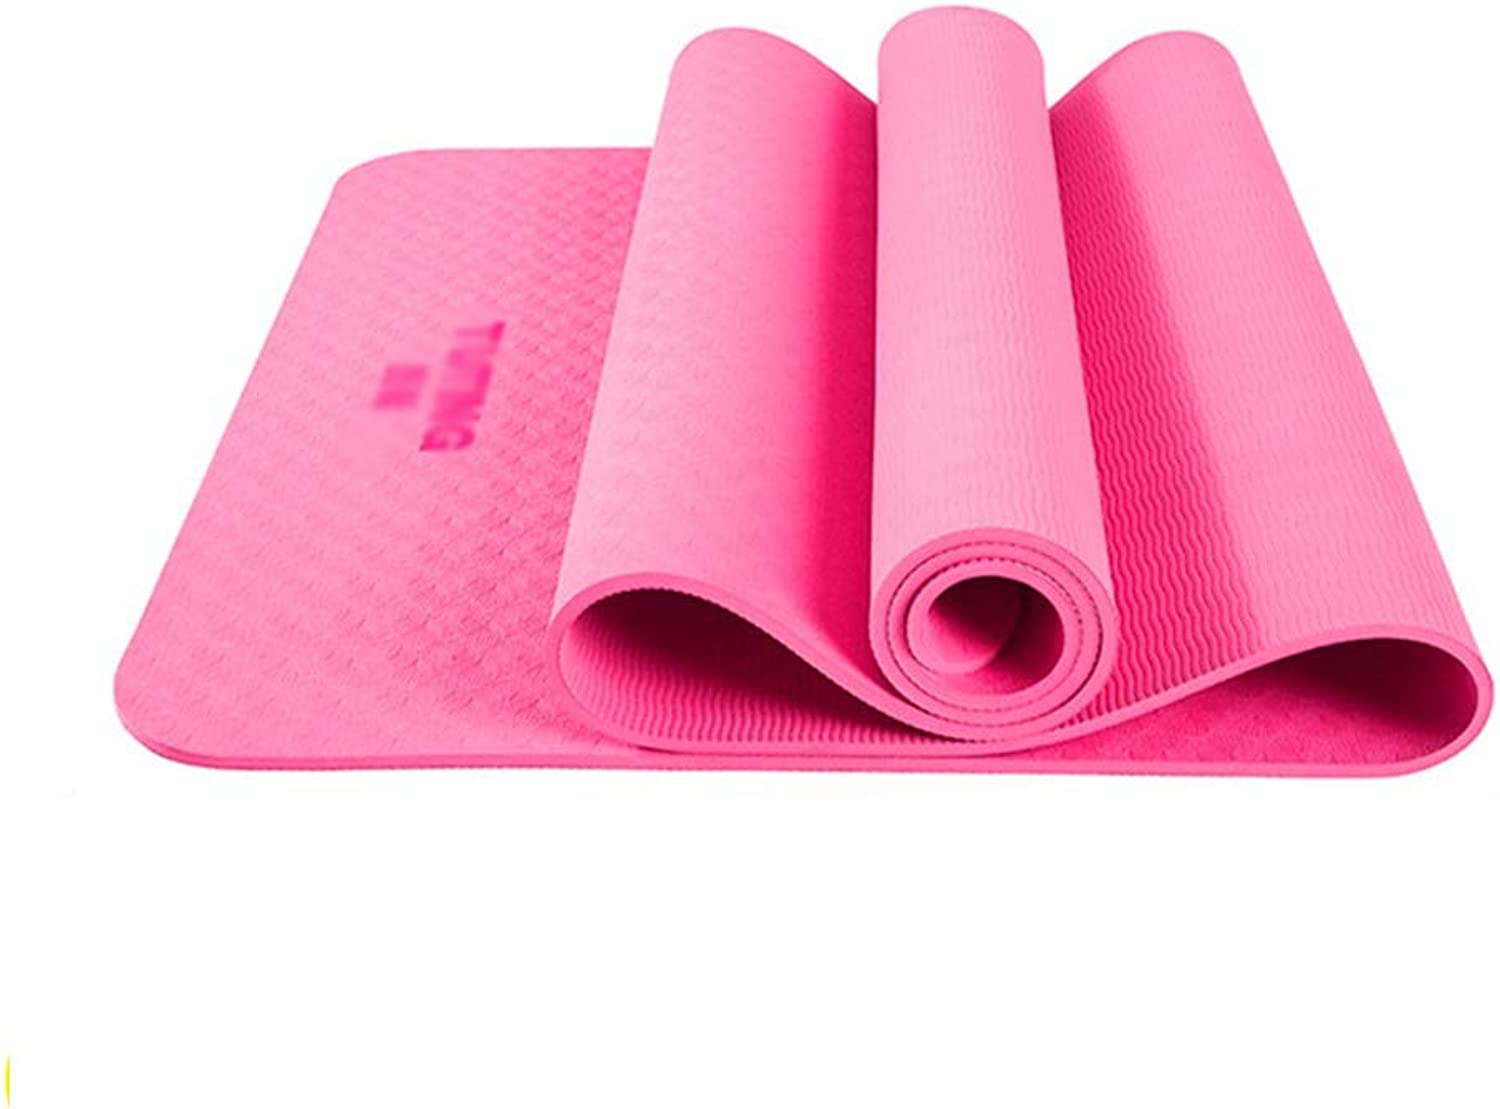 XF Yoga Matten Yogamatte - verbreitert, geruchlos und Ripstop TPE, beidseitiges Anti-Rutsch-Muster, Anfnger Yoga Dance Fitness multifunktionale Trainingsmatte, Bodenmatte, Gre  183x80 cm, 183X61 cm